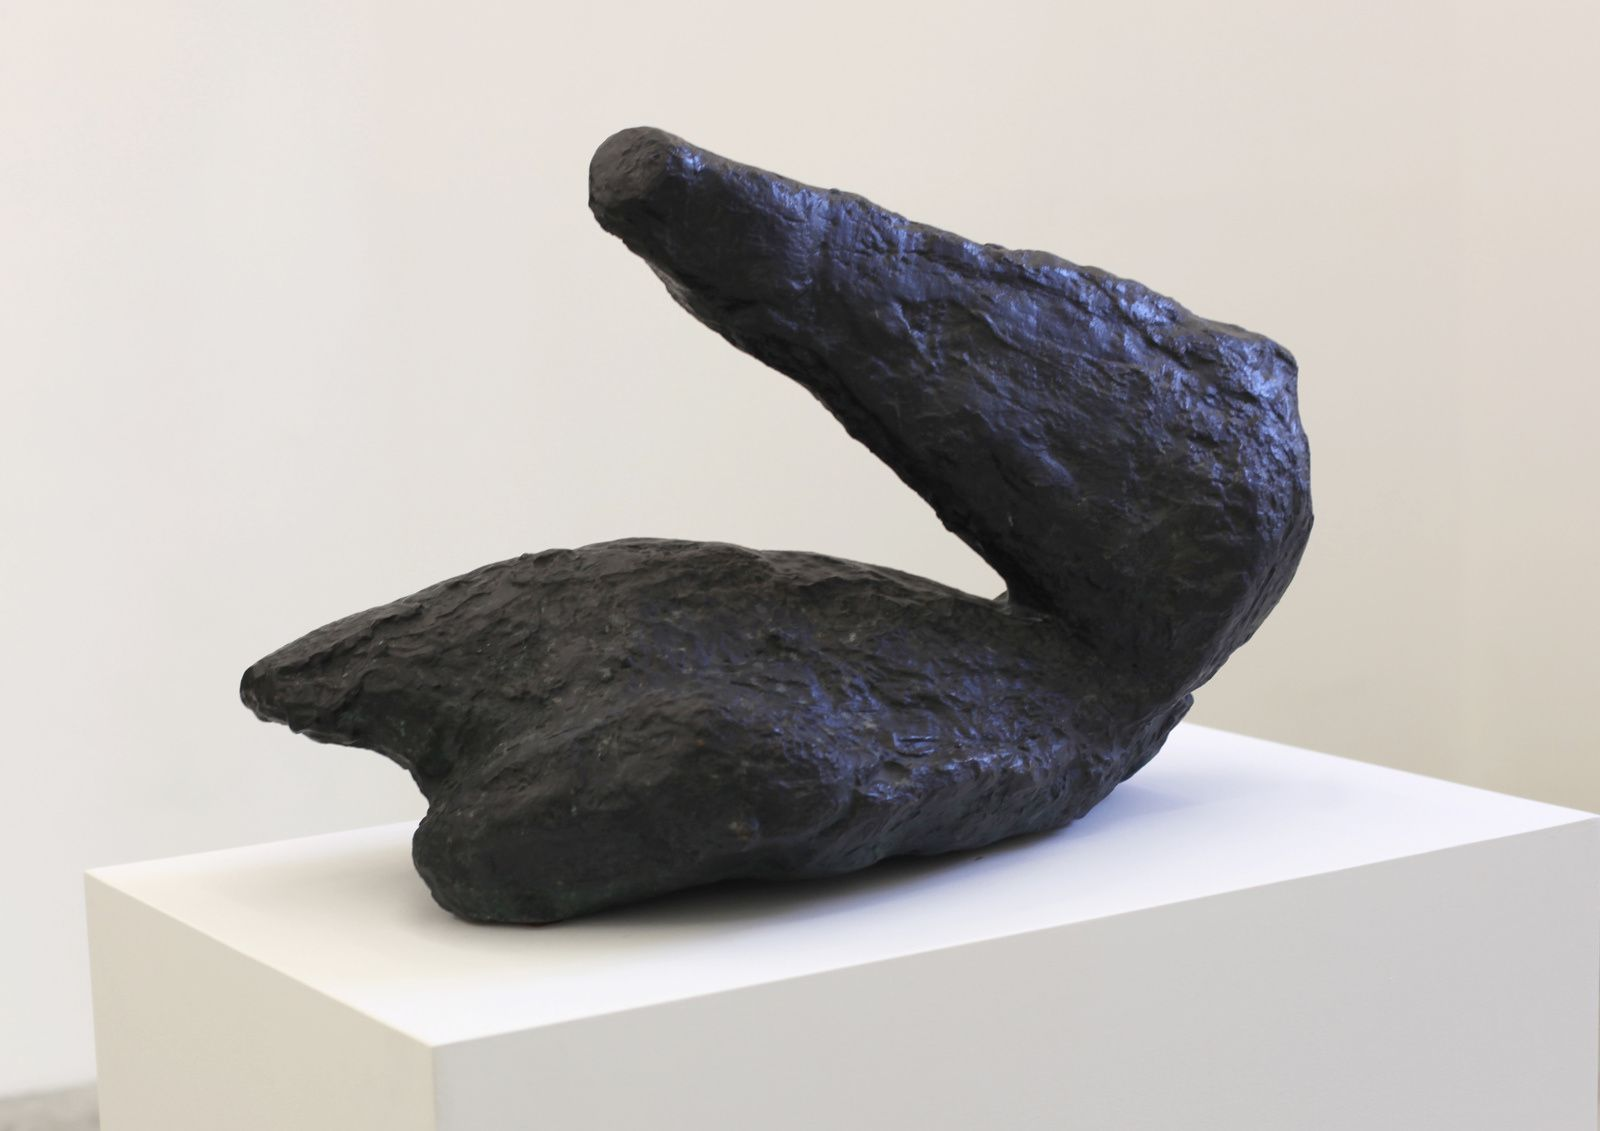 """Liegender Arm - Kopf (Lying Arm - Head)"", 1986 de Per KIRKEBY - Courtesy ALMINE RECH Gallery © Photo Éric Simon"